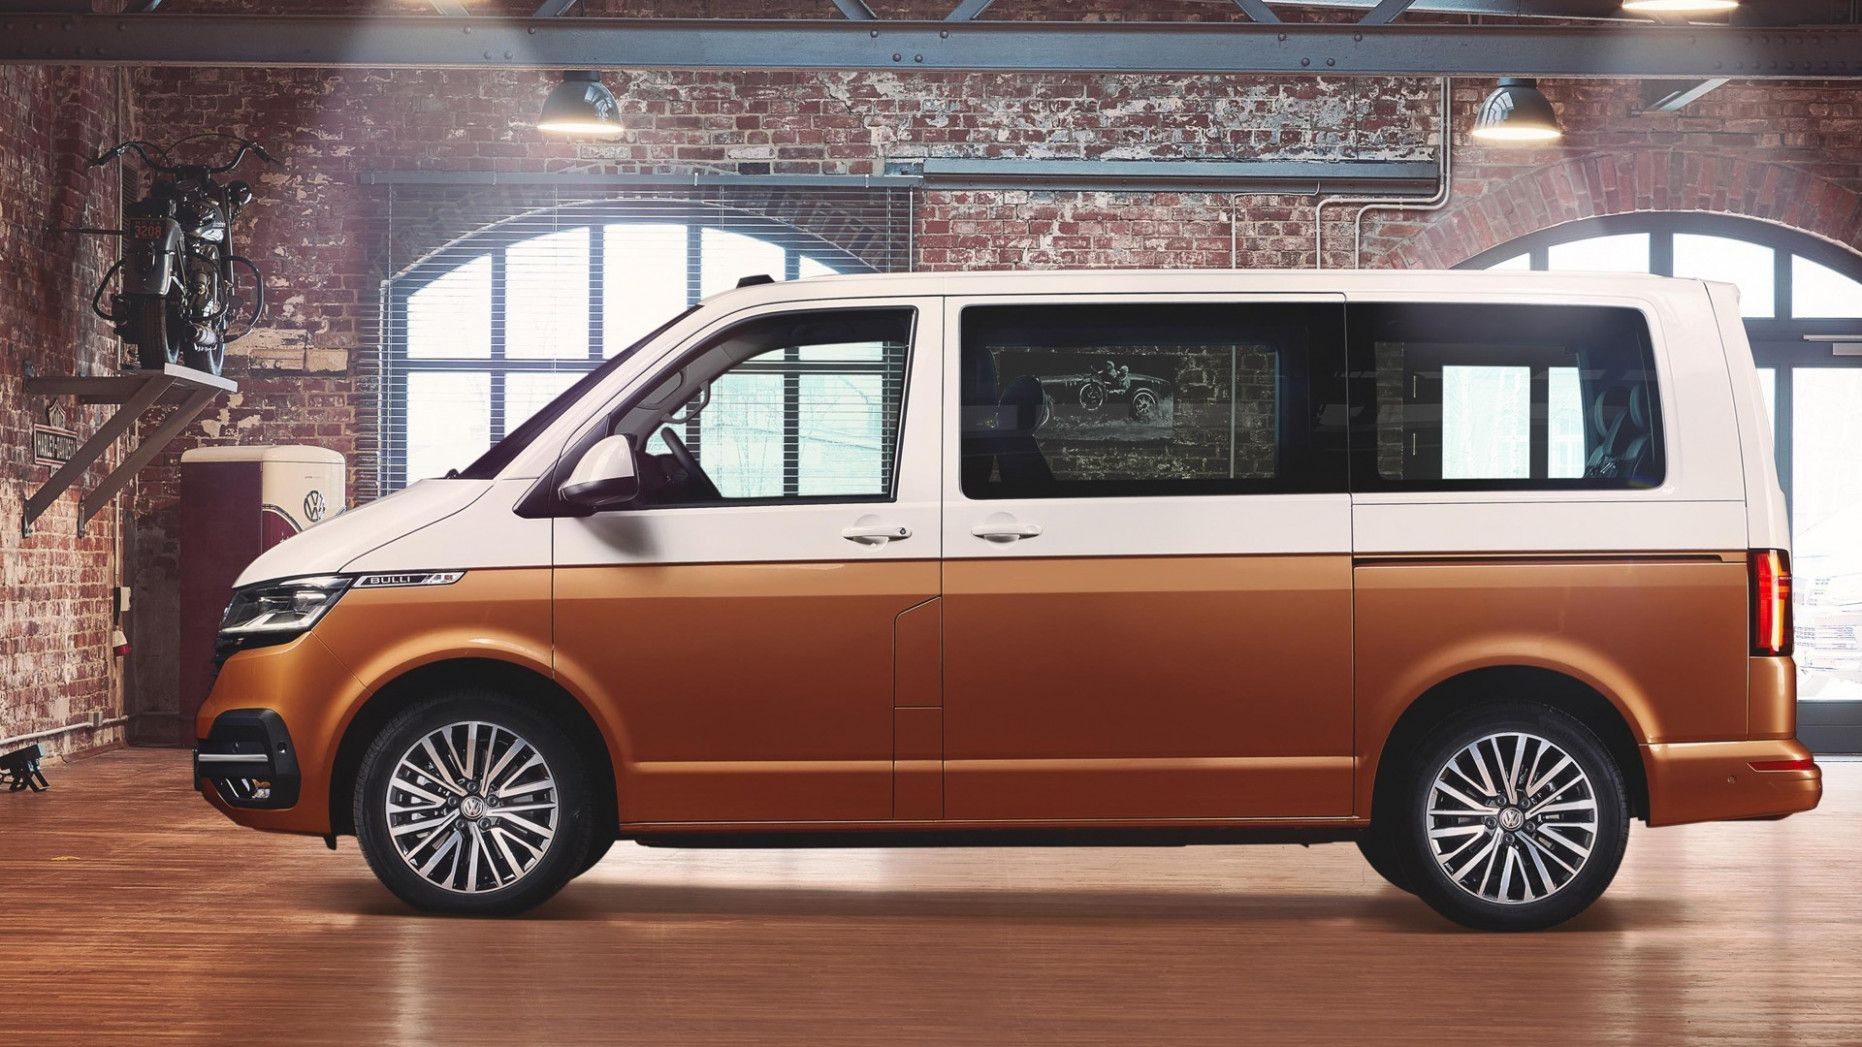 7 Picture 2020 Volkswagen Van Commercial In 2020 New Engine Volkswagen Volkswagen Van